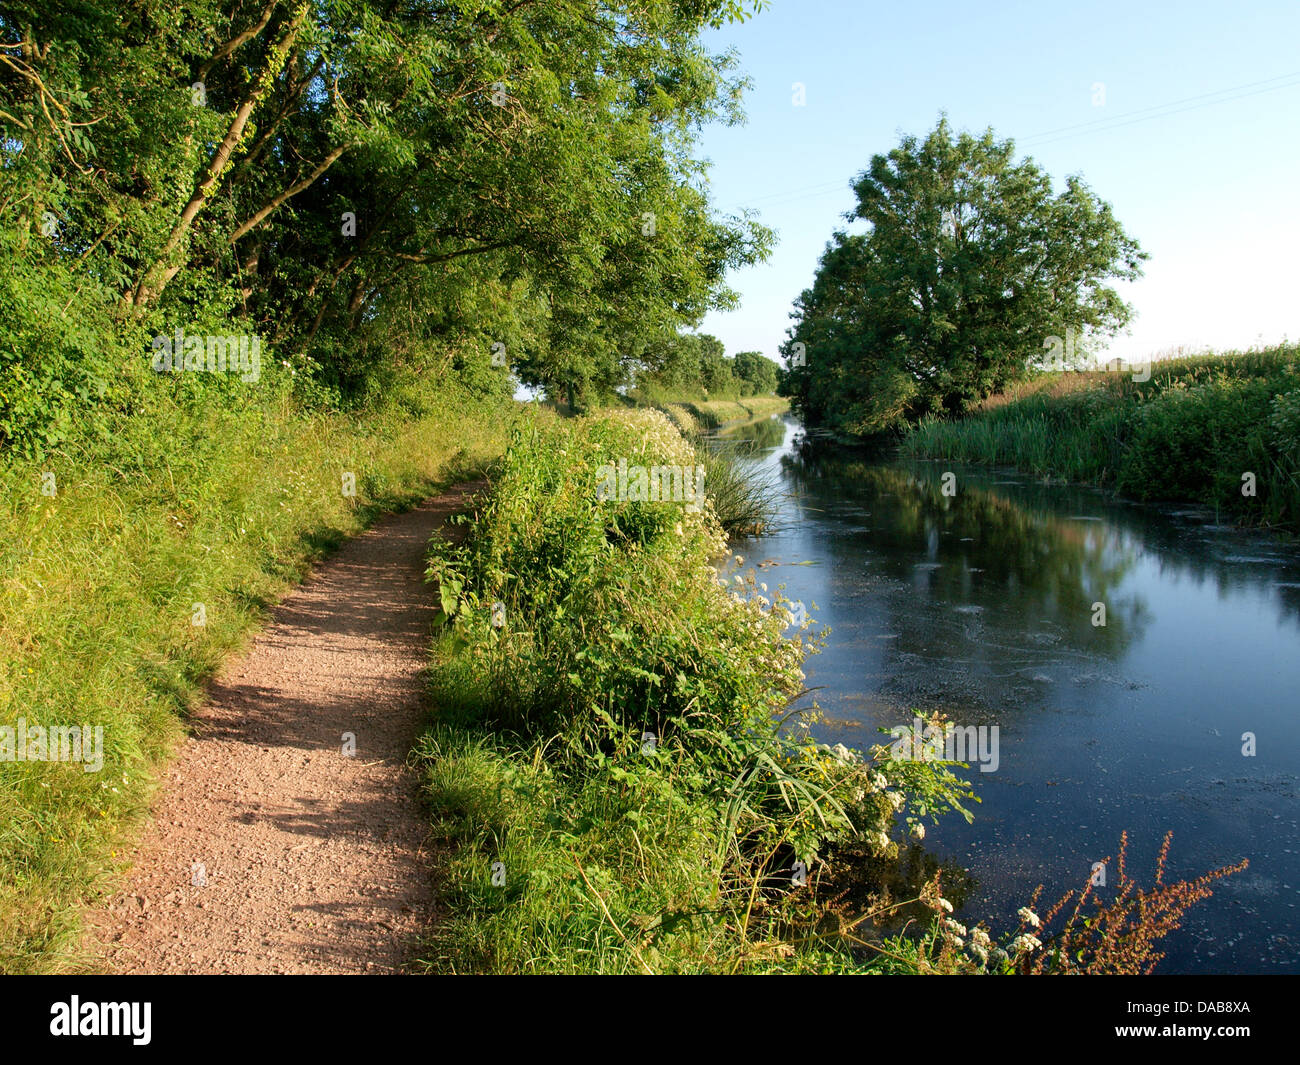 Towpath on The Grand Western Canal near Sampford Peverell, Devon. UK Stock Photo